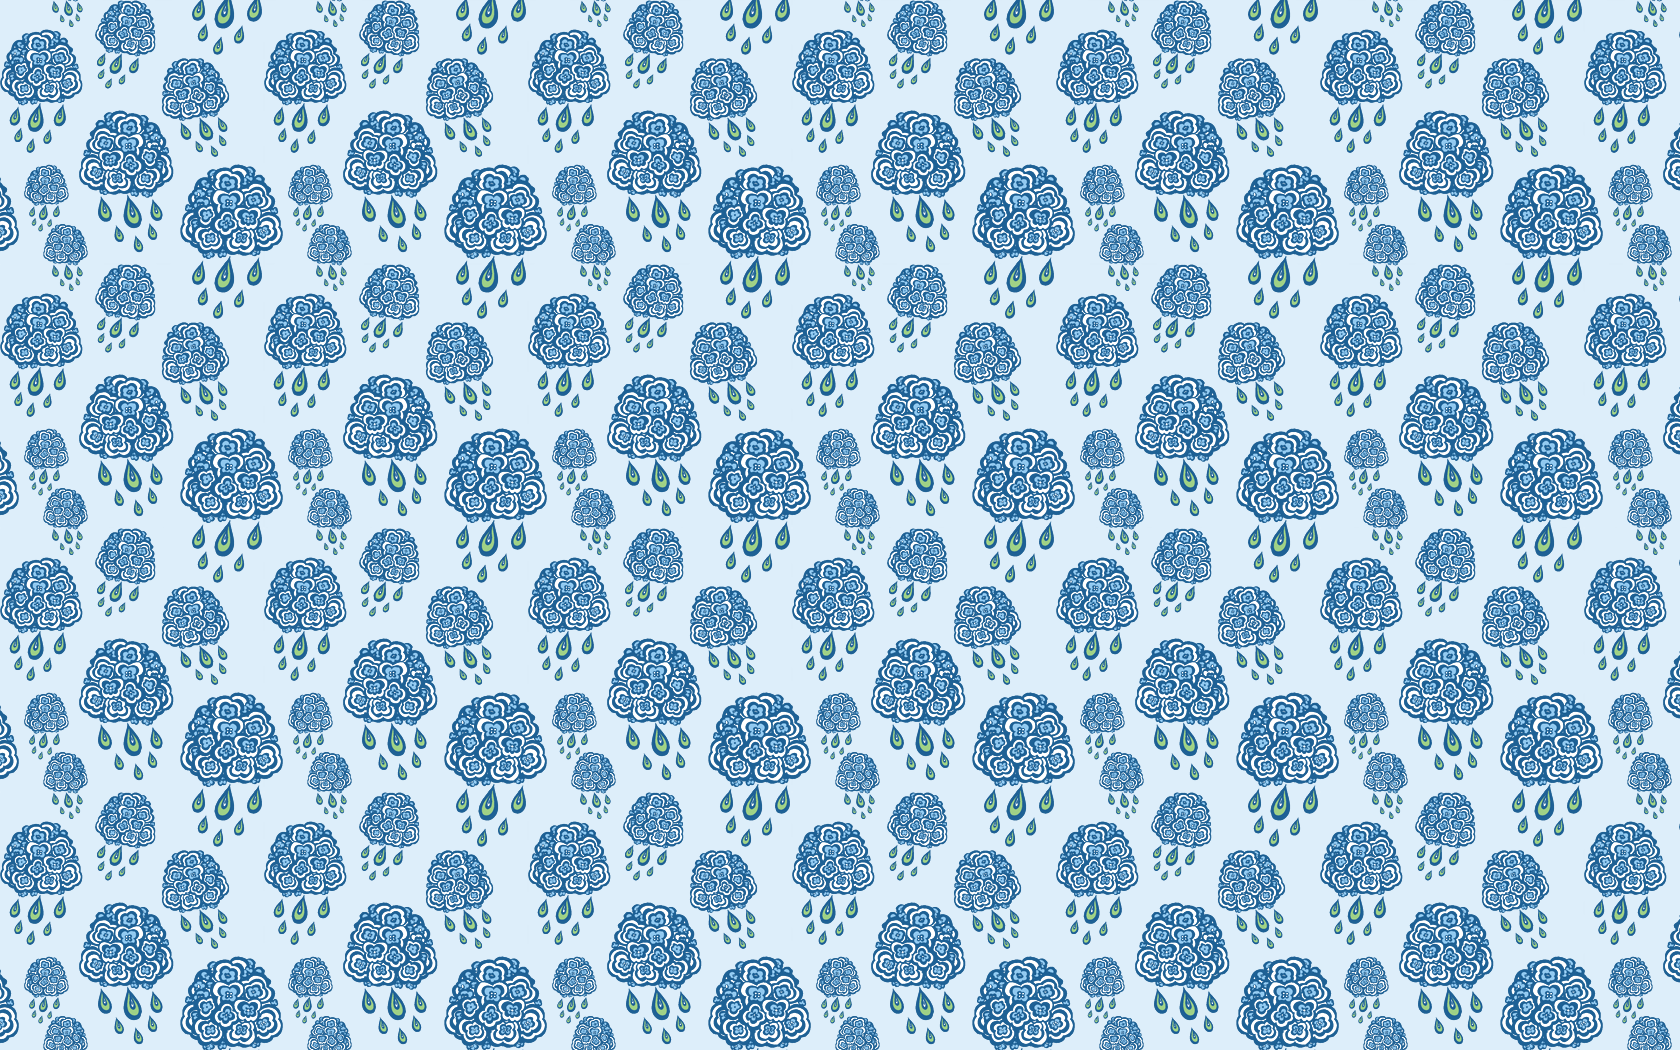 Wallpaper Patterned